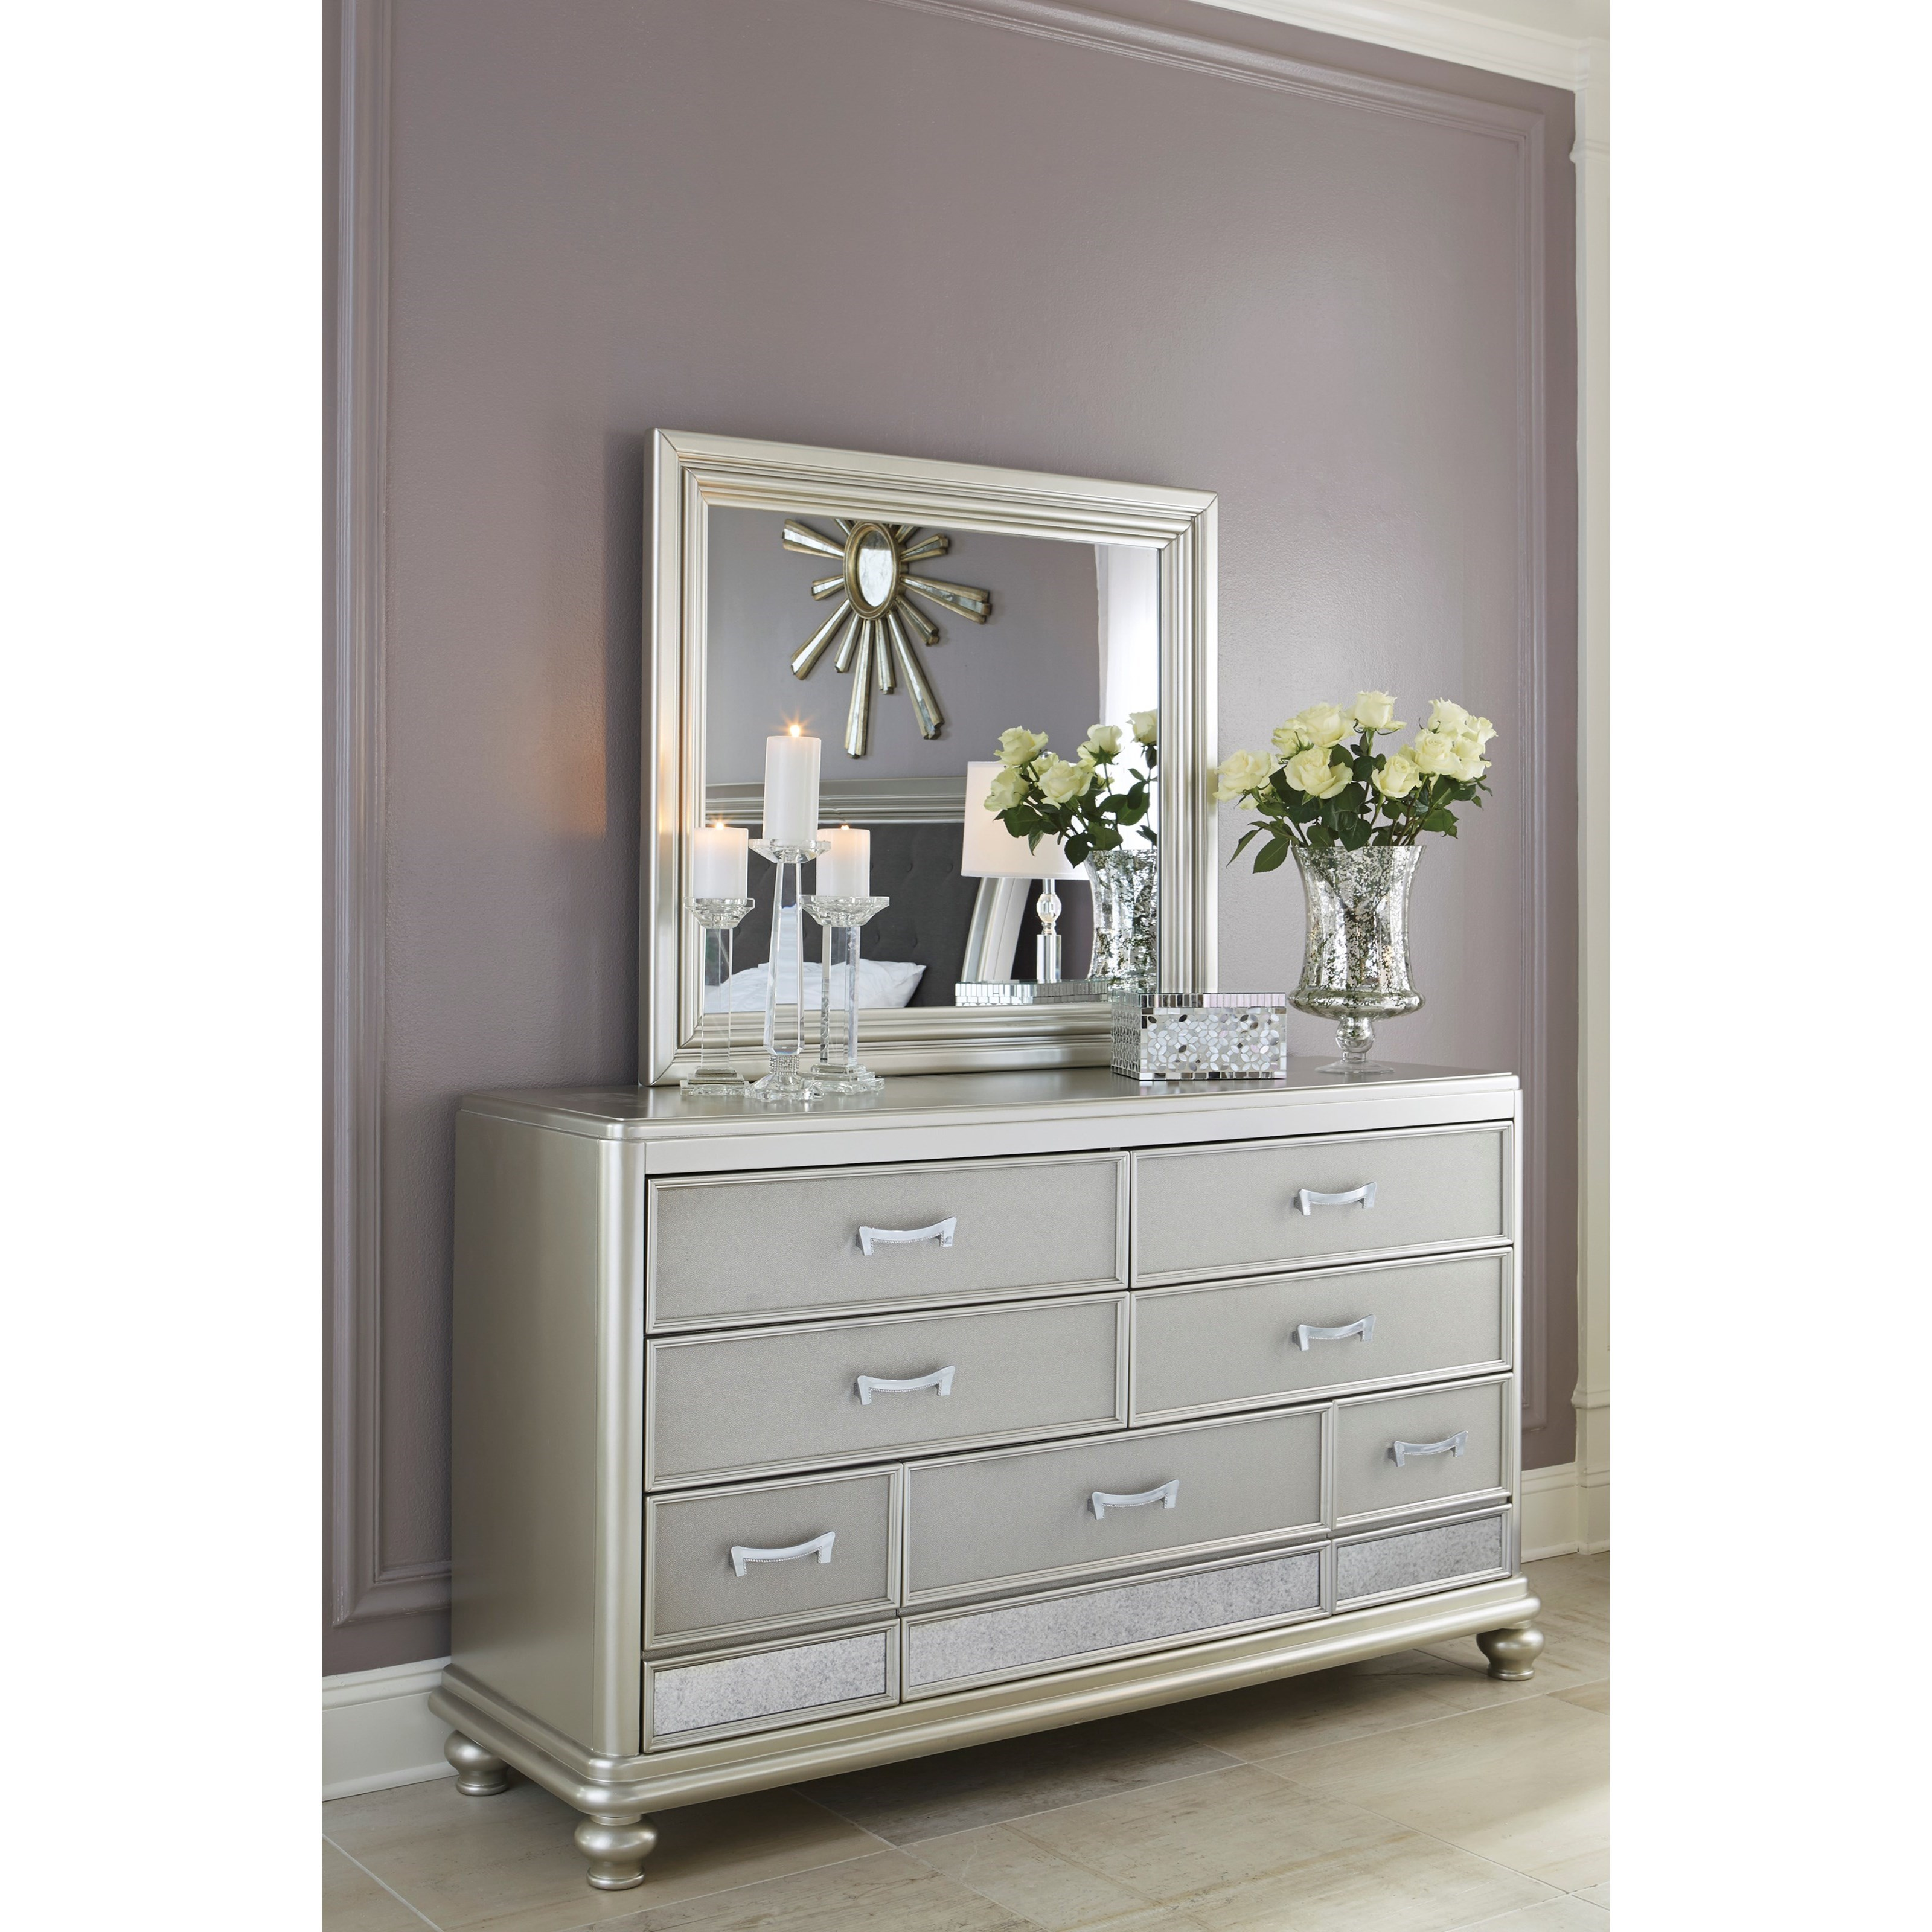 Bedroom Dressers With Mirrors: Signature Design By Ashley Coralayne Dresser & Bedroom